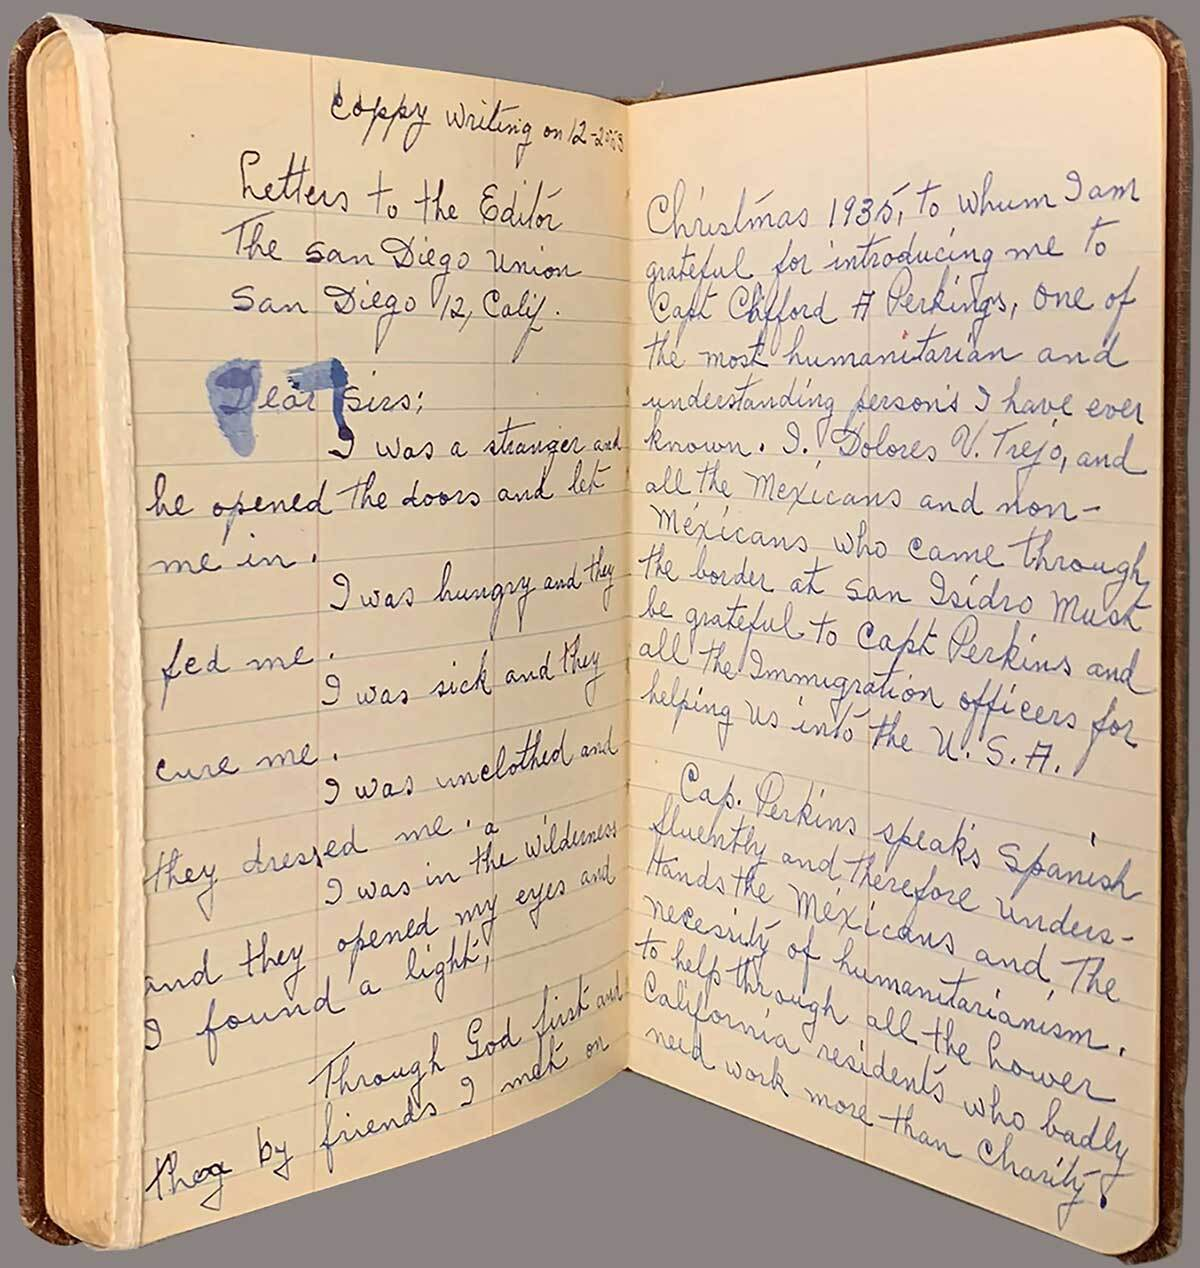 A page from the journal of Dolores V. Trejo, a single immigrant worker from Mexico who worked in California   The Huntington Library, Art Museum, and Botanical Gardens